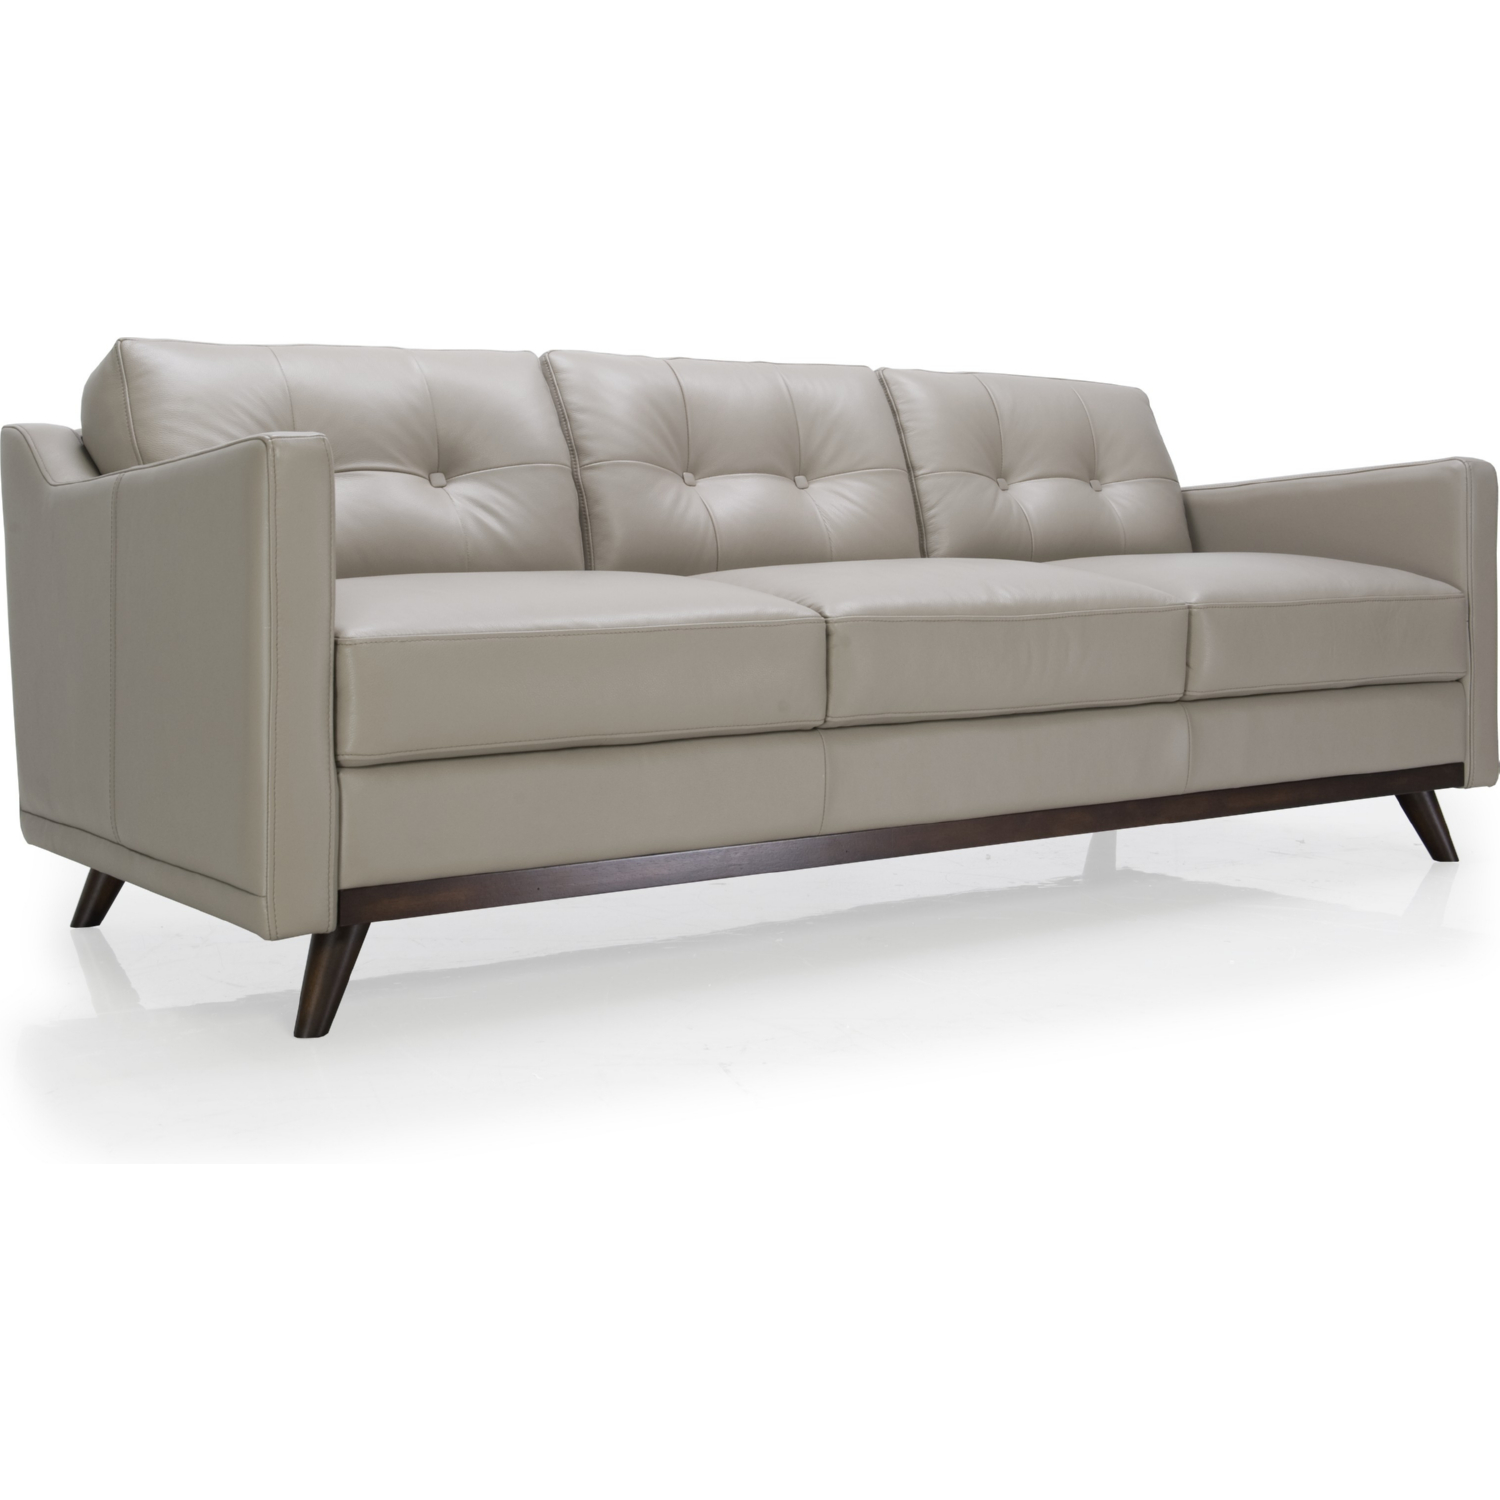 Monika All Leather Mid Century Sofa in Argent Medium Grey by Moroni Fine  Leather Furniture